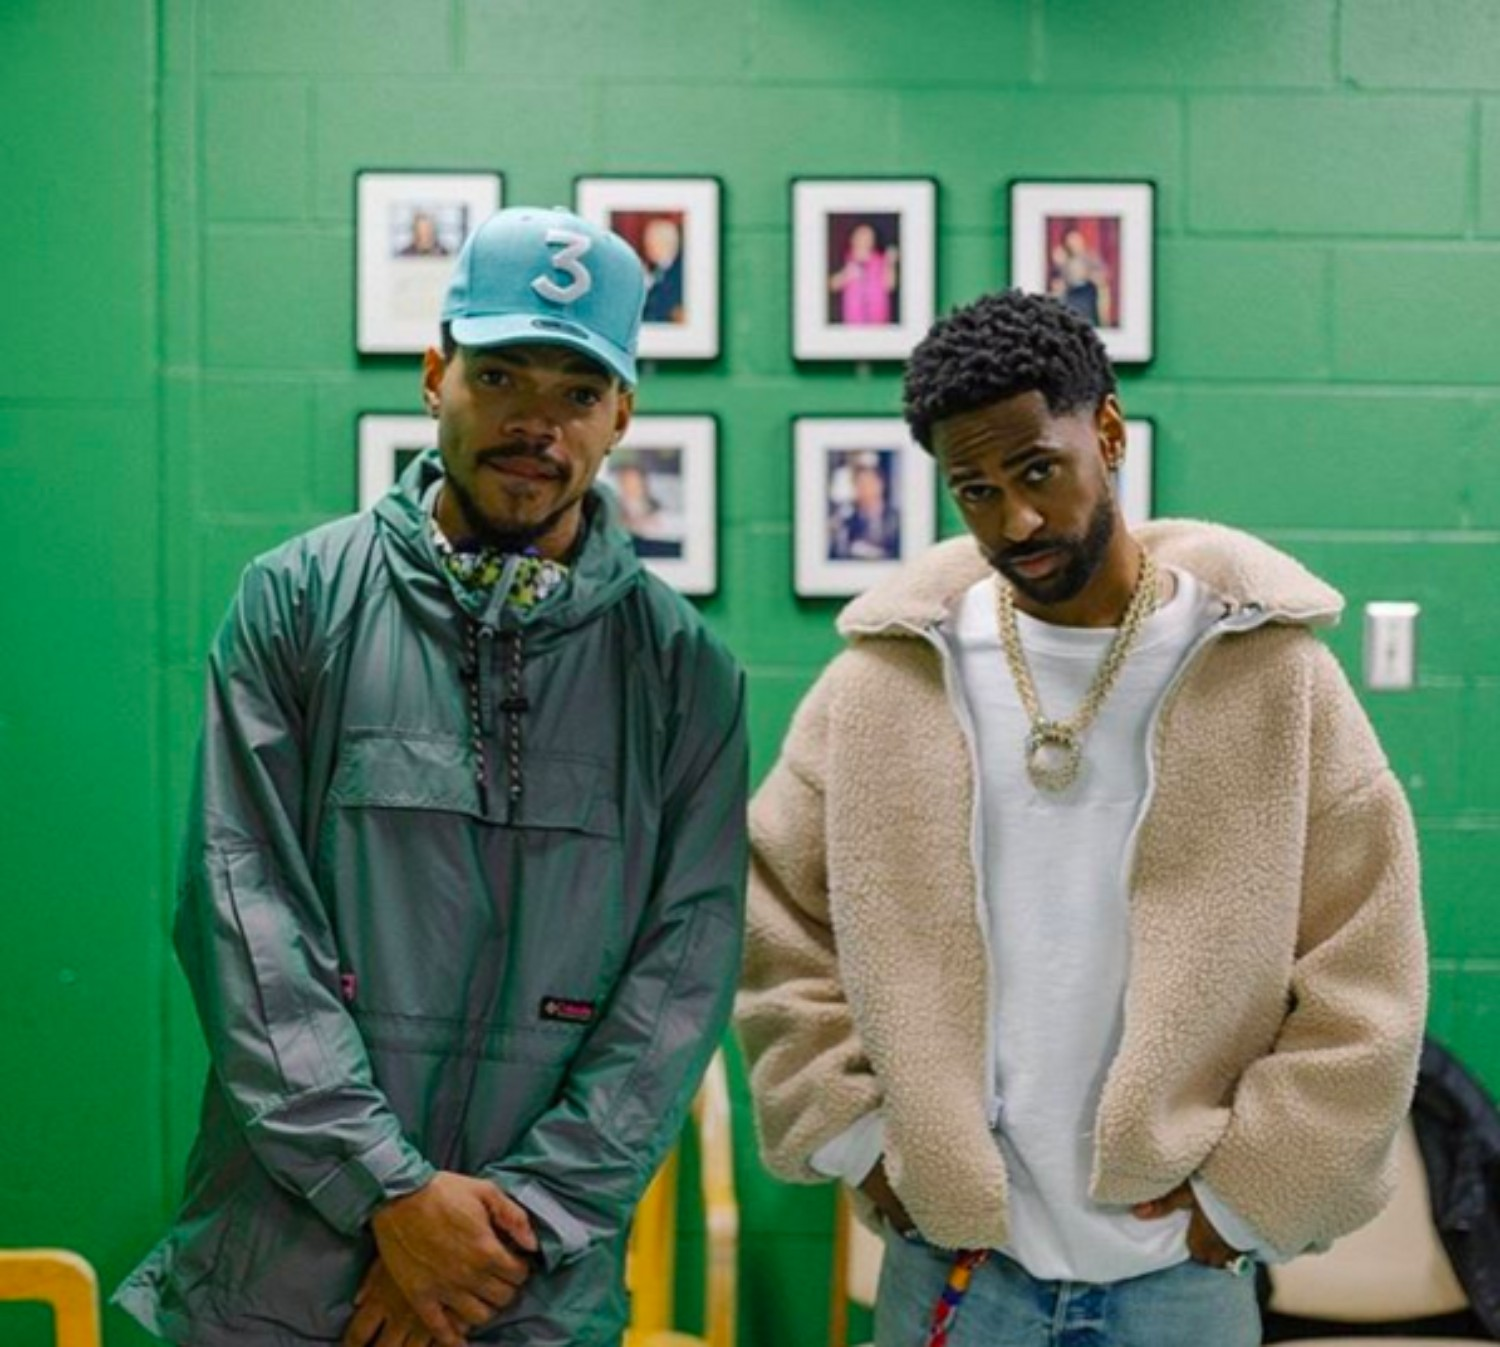 SPOTTED: Big Sean & Chance The Rapper in Skodia and Columbia x Opening Ceremony